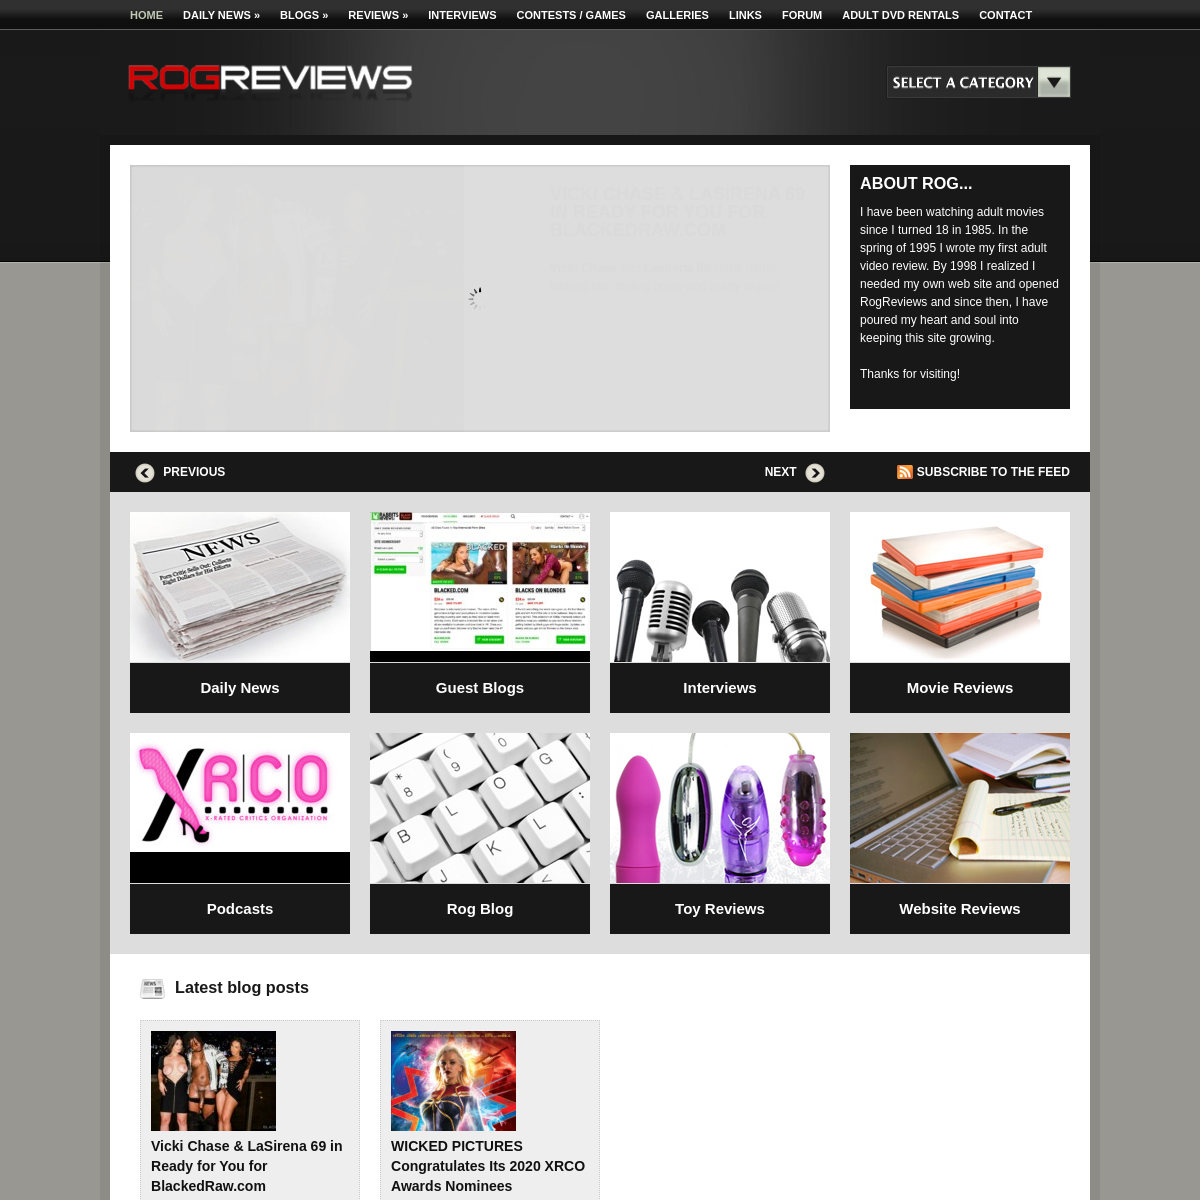 A complete backup of www.rogreviews.com